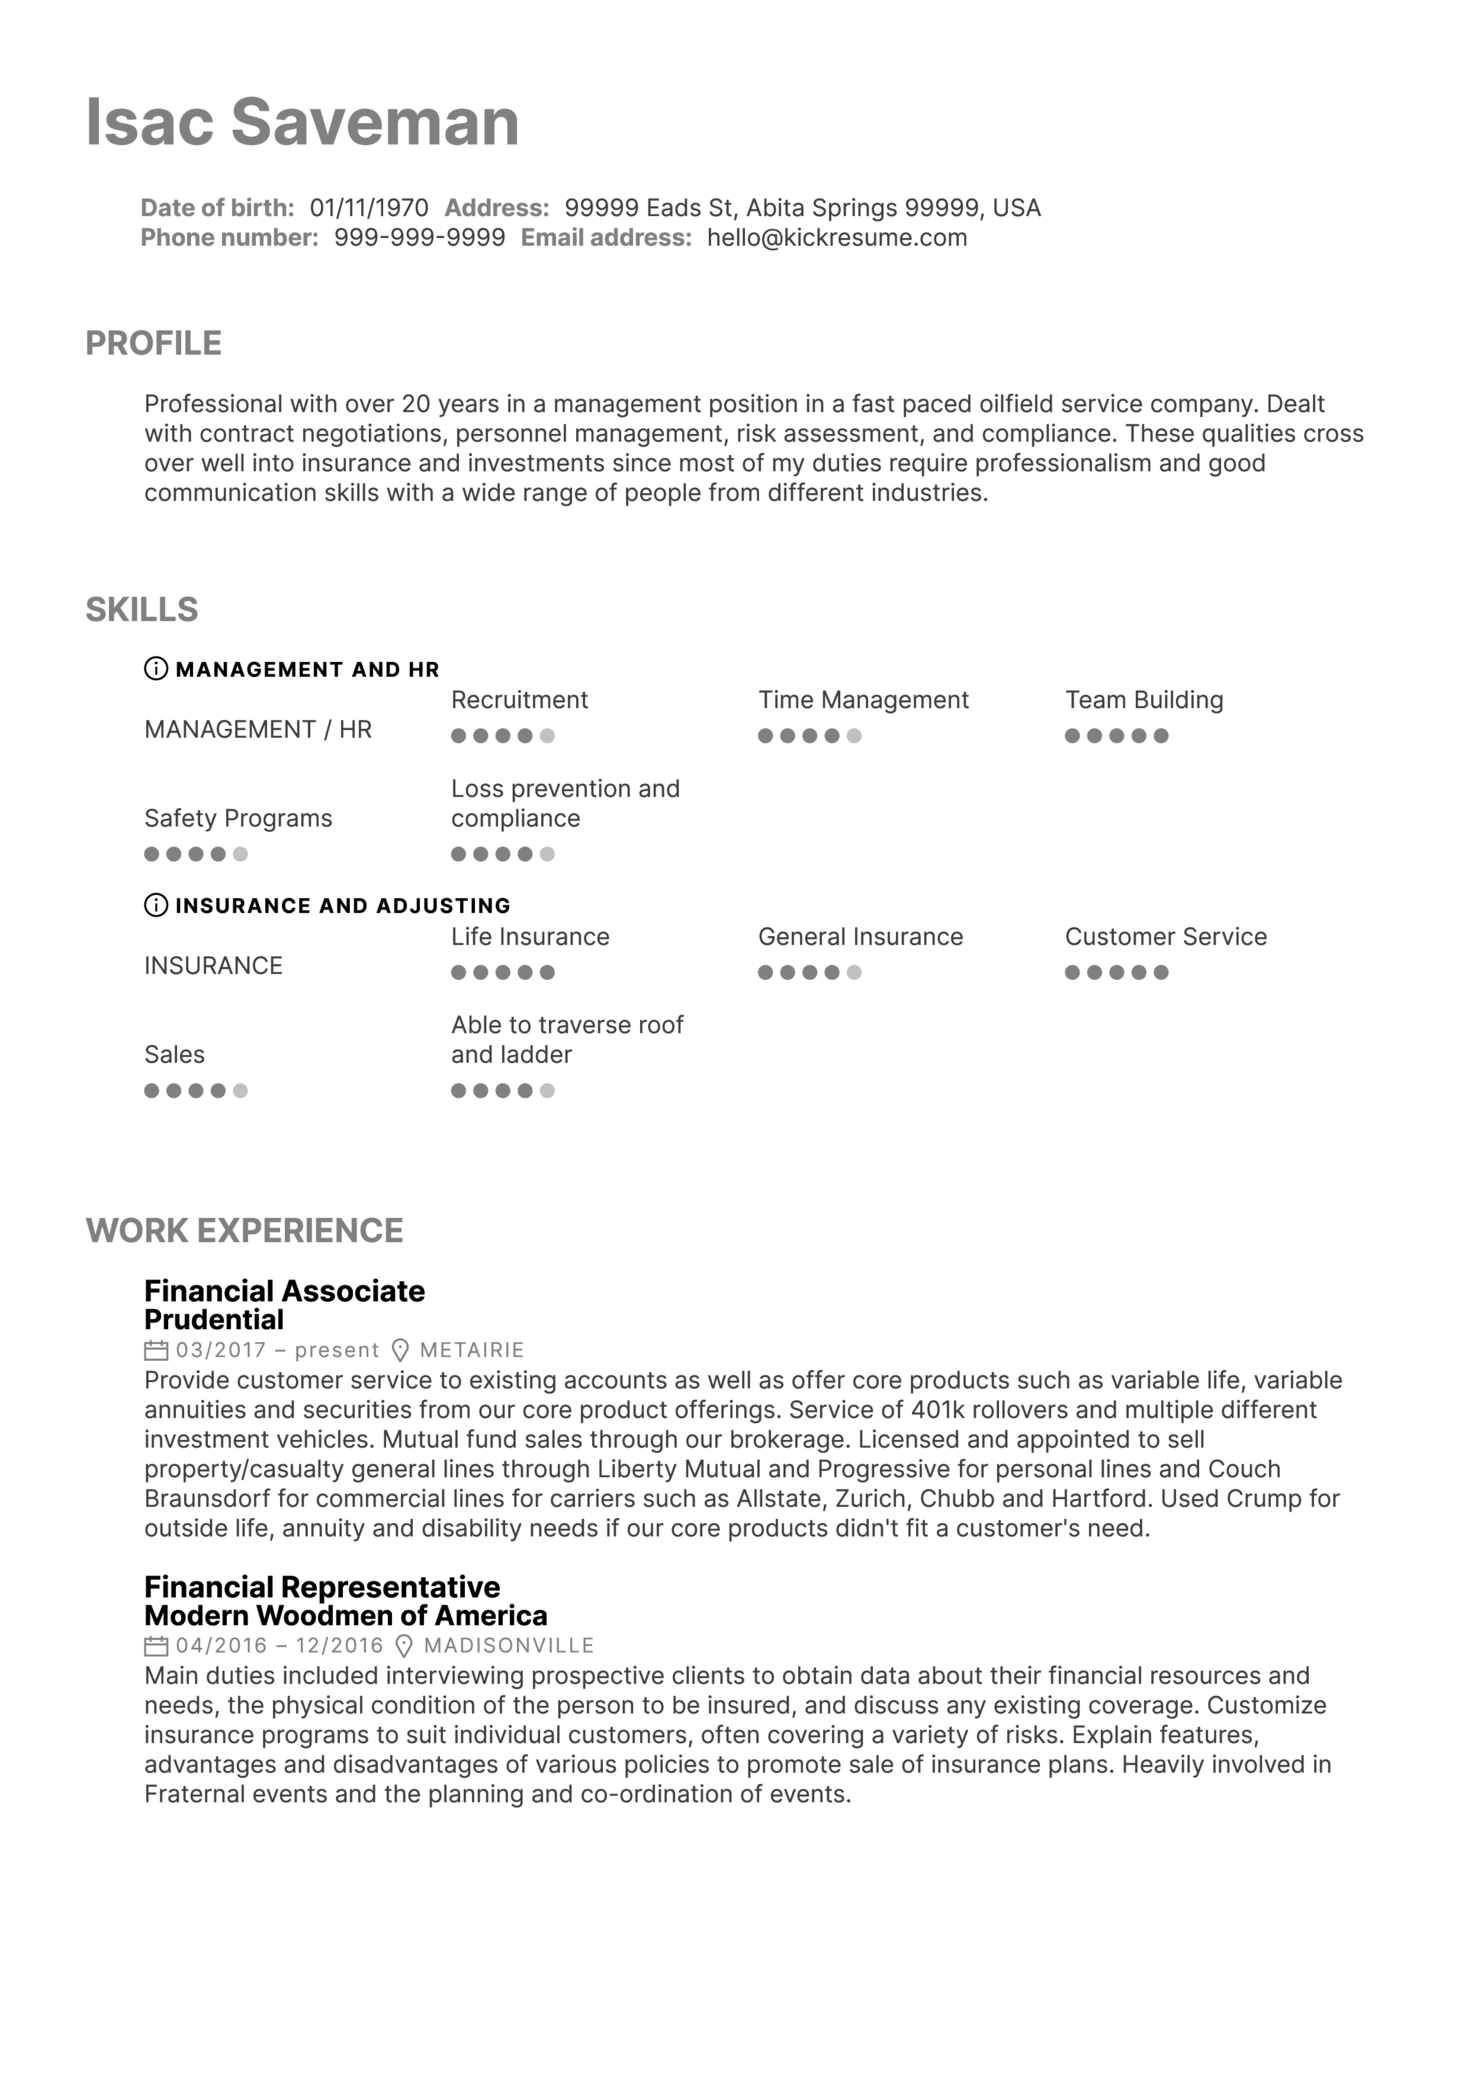 Financial Services Associate at Prudential Resume Sample (parte 1)